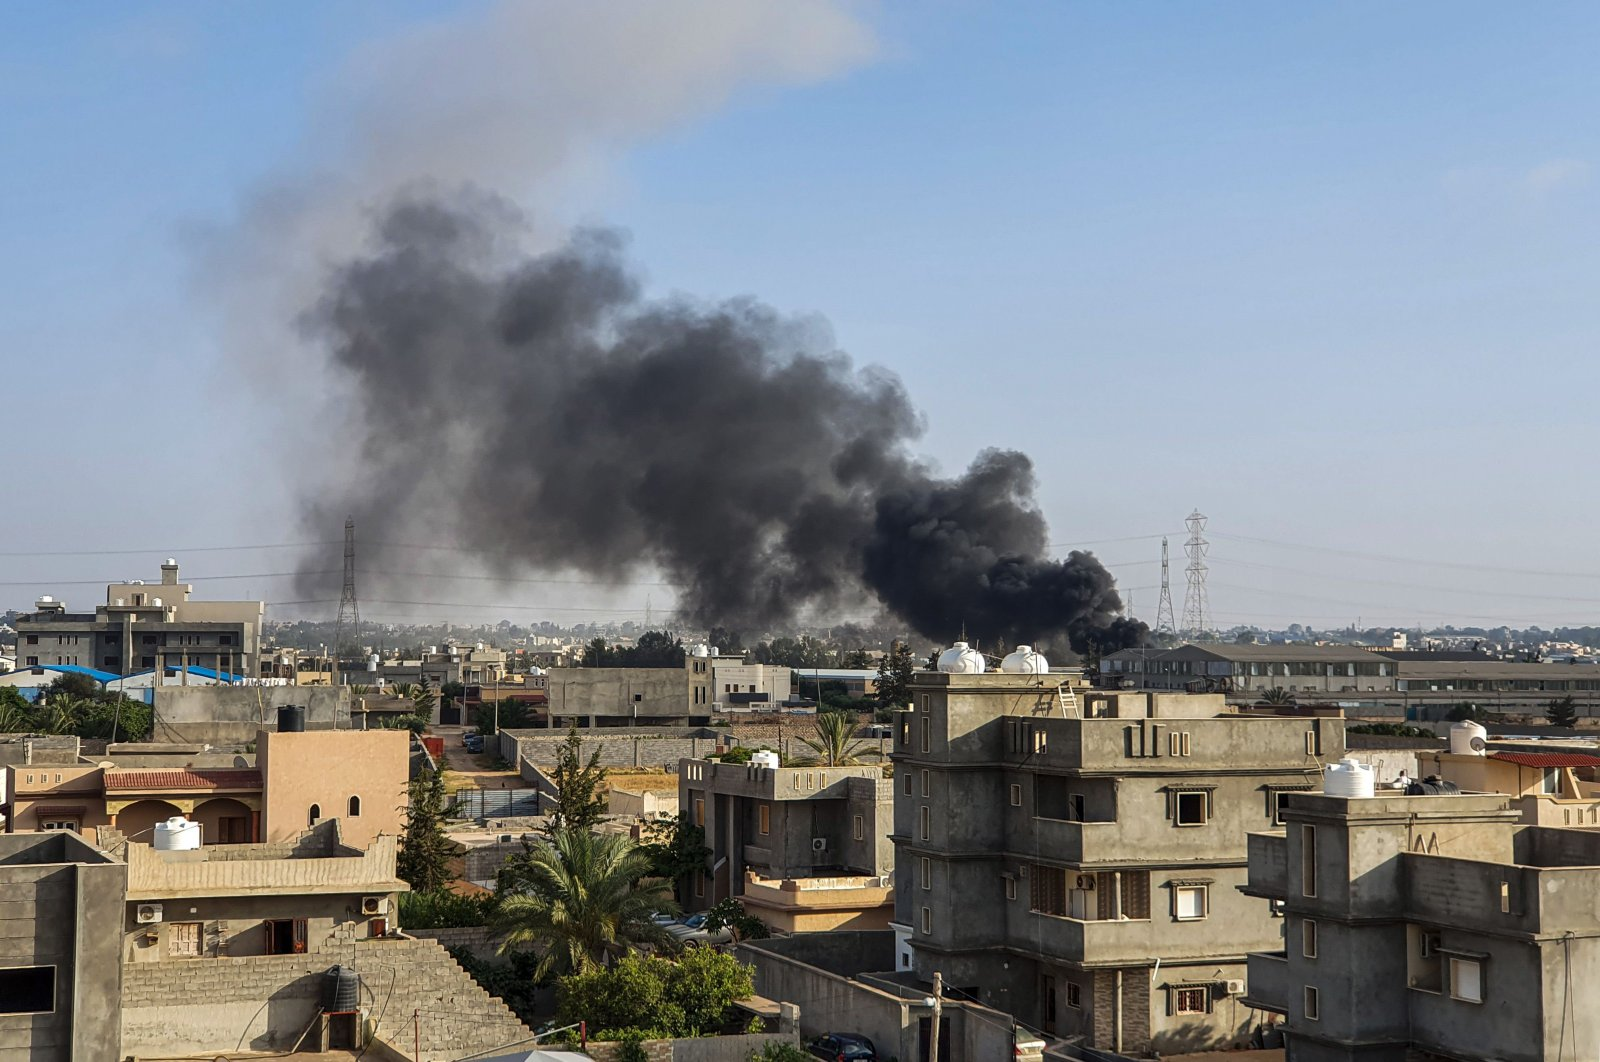 This picture taken on June 29, 2019, shows smoke plumes rising in Tajoura, south of the Libyan capital Tripoli, following a reported airstrike by forces loyal to warlord Gen. Khalifa Haftar. (AFP Photo)